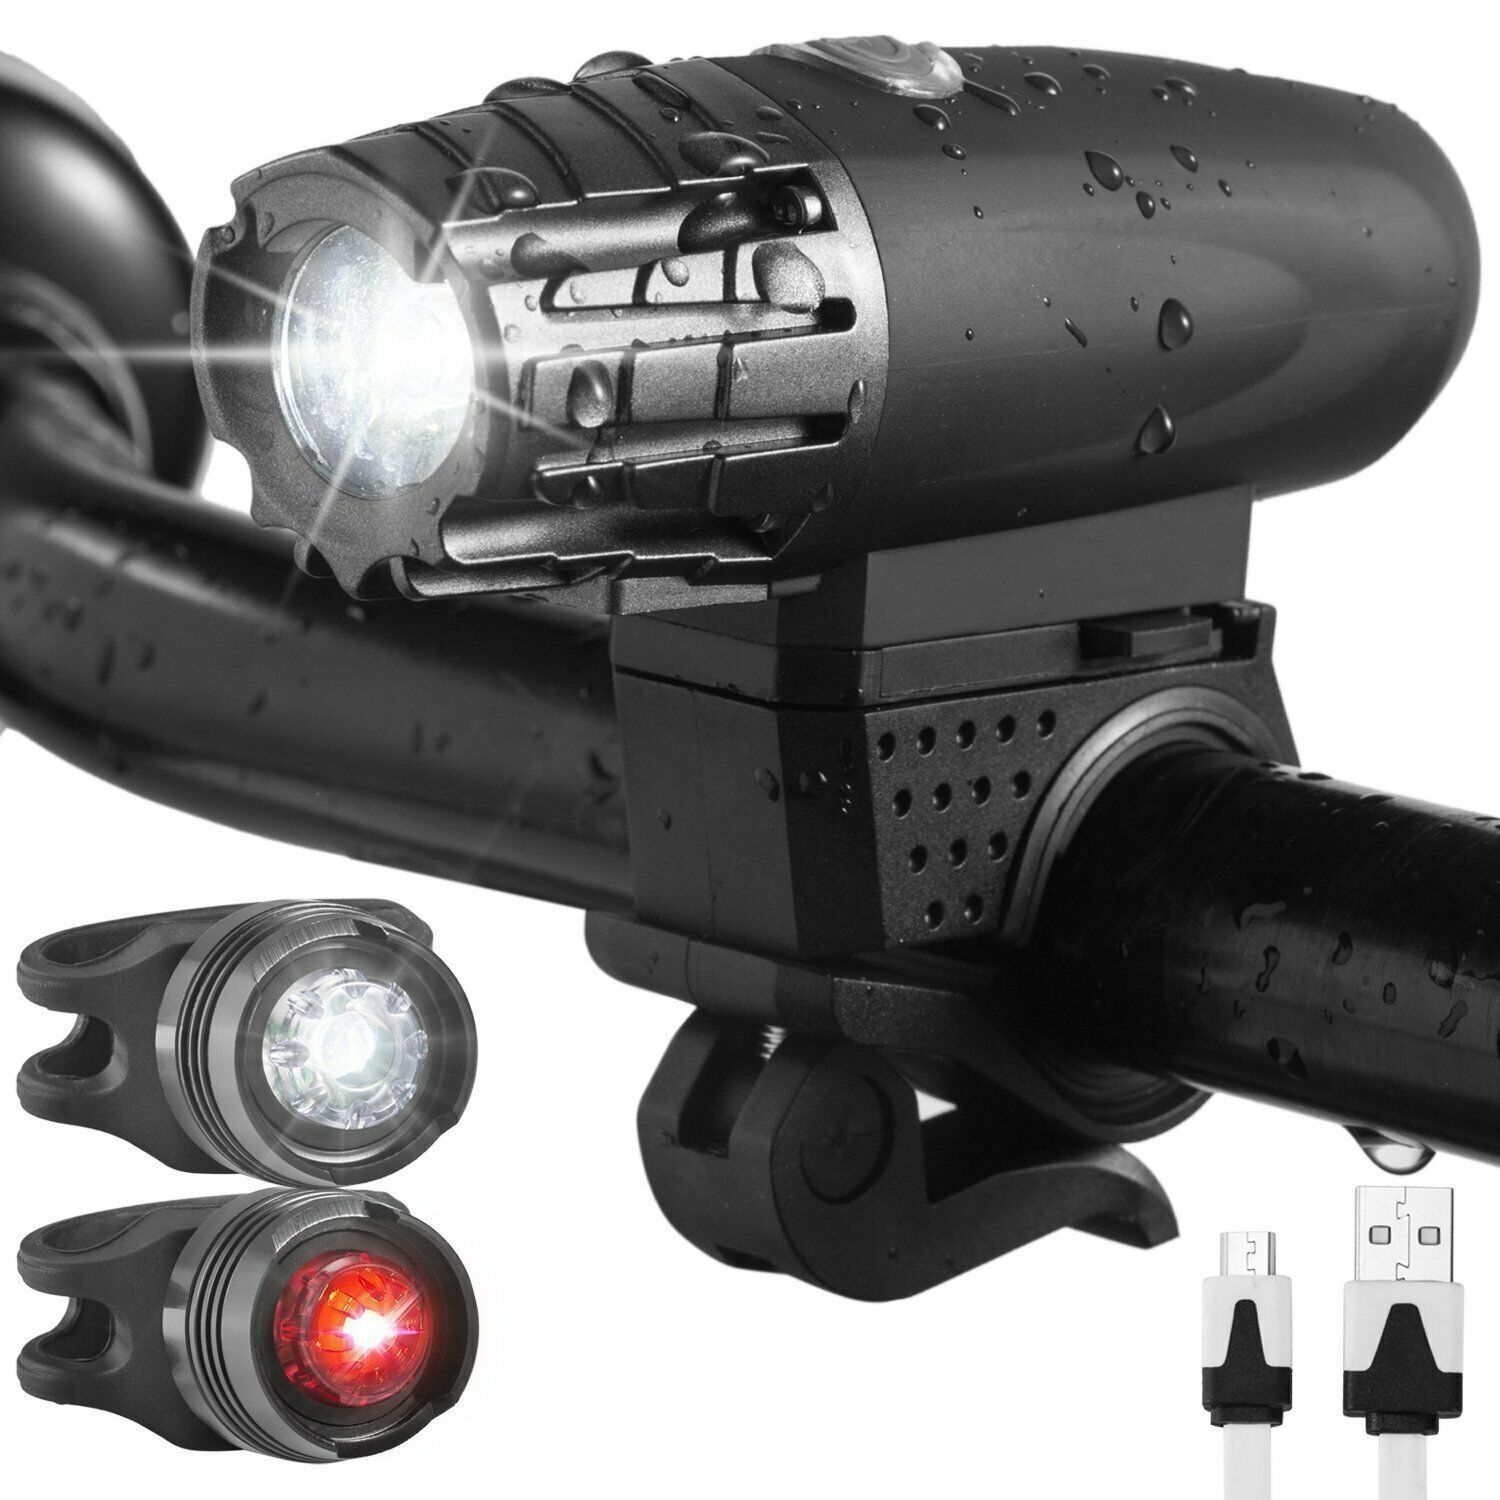 Usb Rechargeable Led Bicycle Bright Bike Front Headlight2 Rear Taillight Us Qe Bicycle Light Ideas Of Bicycle Light Bicyclelight Flashlights Bike Lights